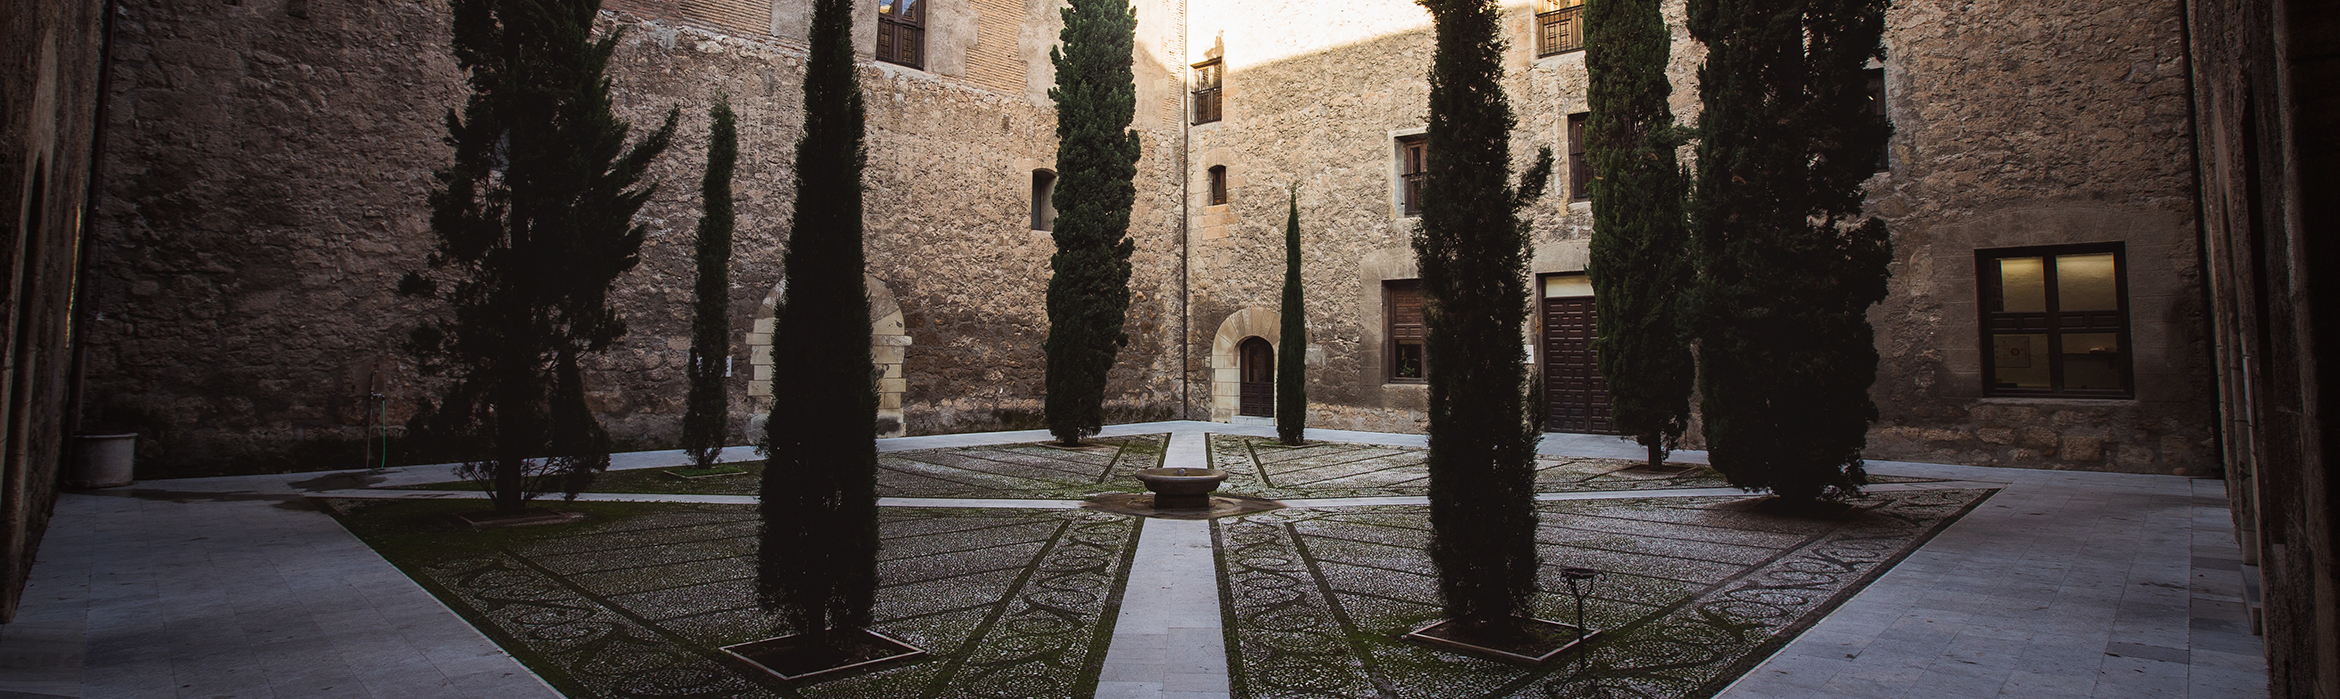 Patio del Hospital Real con Cipreses